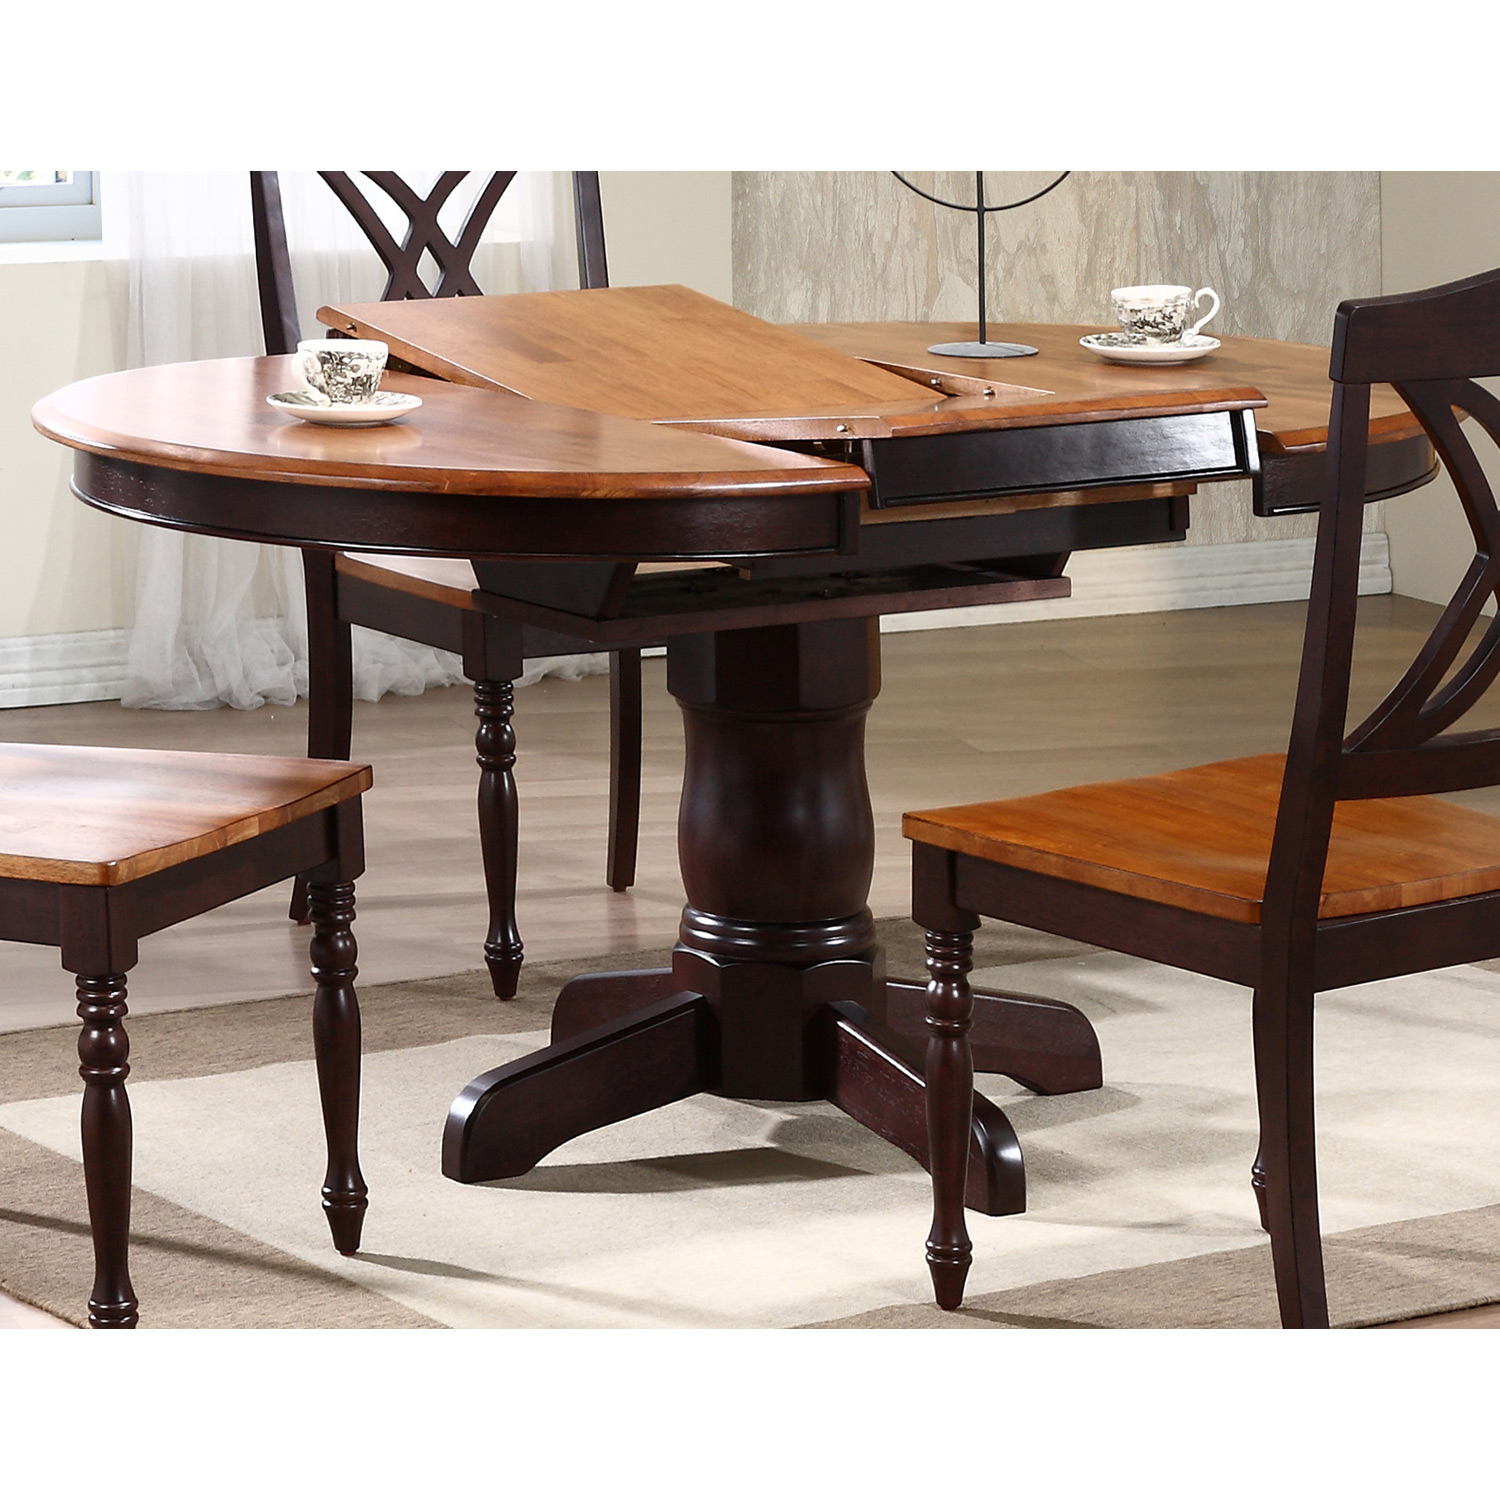 Cyrus Extending Dining Table   Round Top, Pedestal Base, Two Tone   ICON   ...